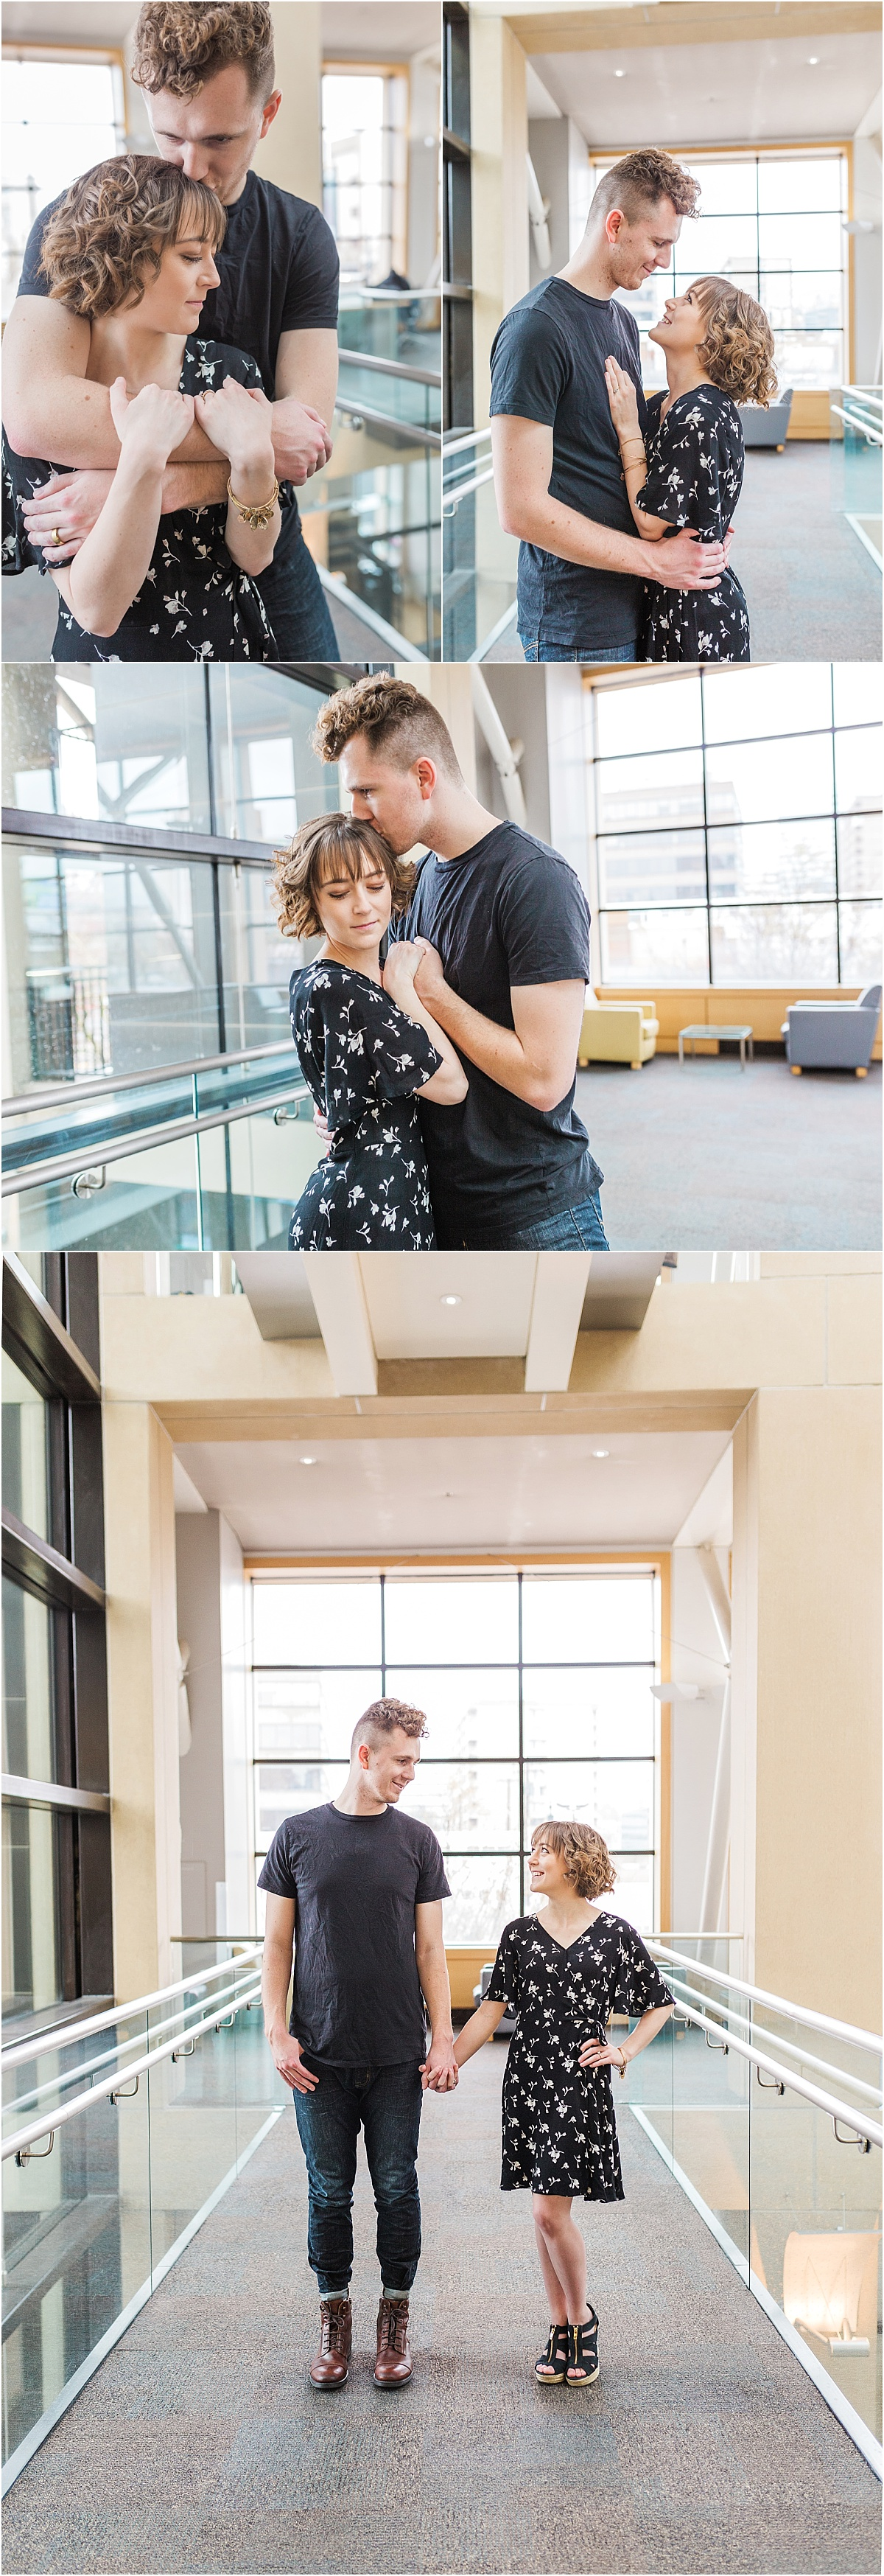 A couple in a modern building with lots of leading lines, sunlight, and architectural elements. The couples is hugging, touching arms, and showing off their love.